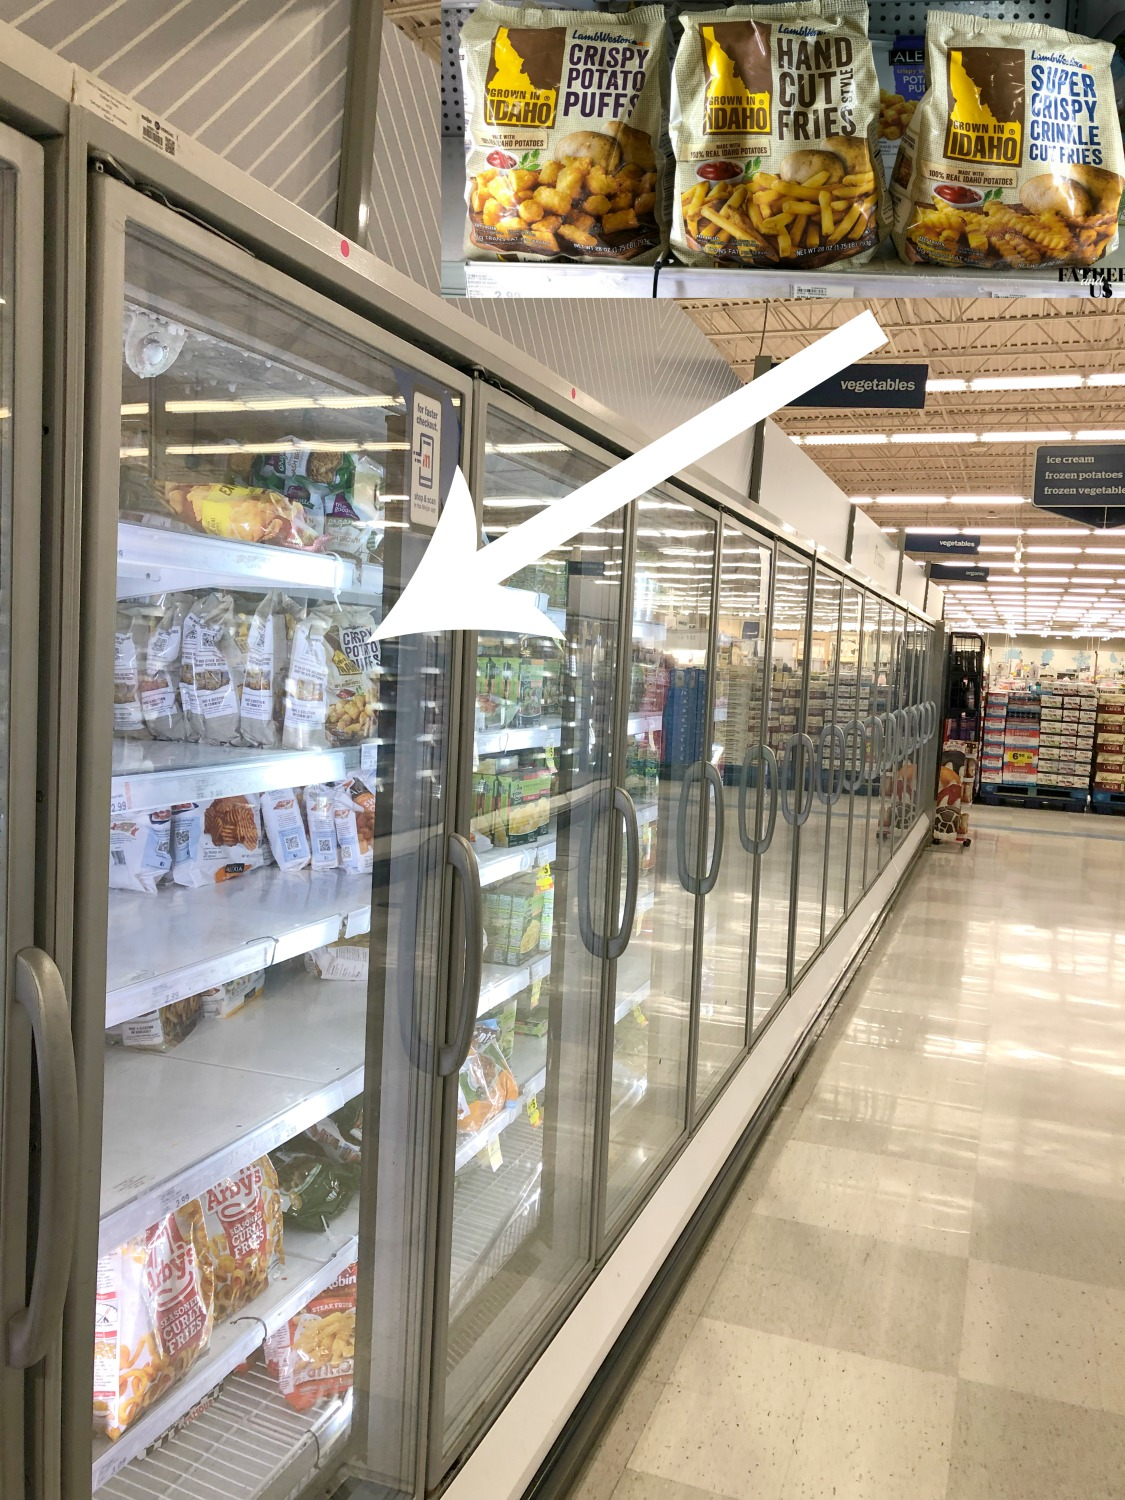 location of potatoes in freezer aisle